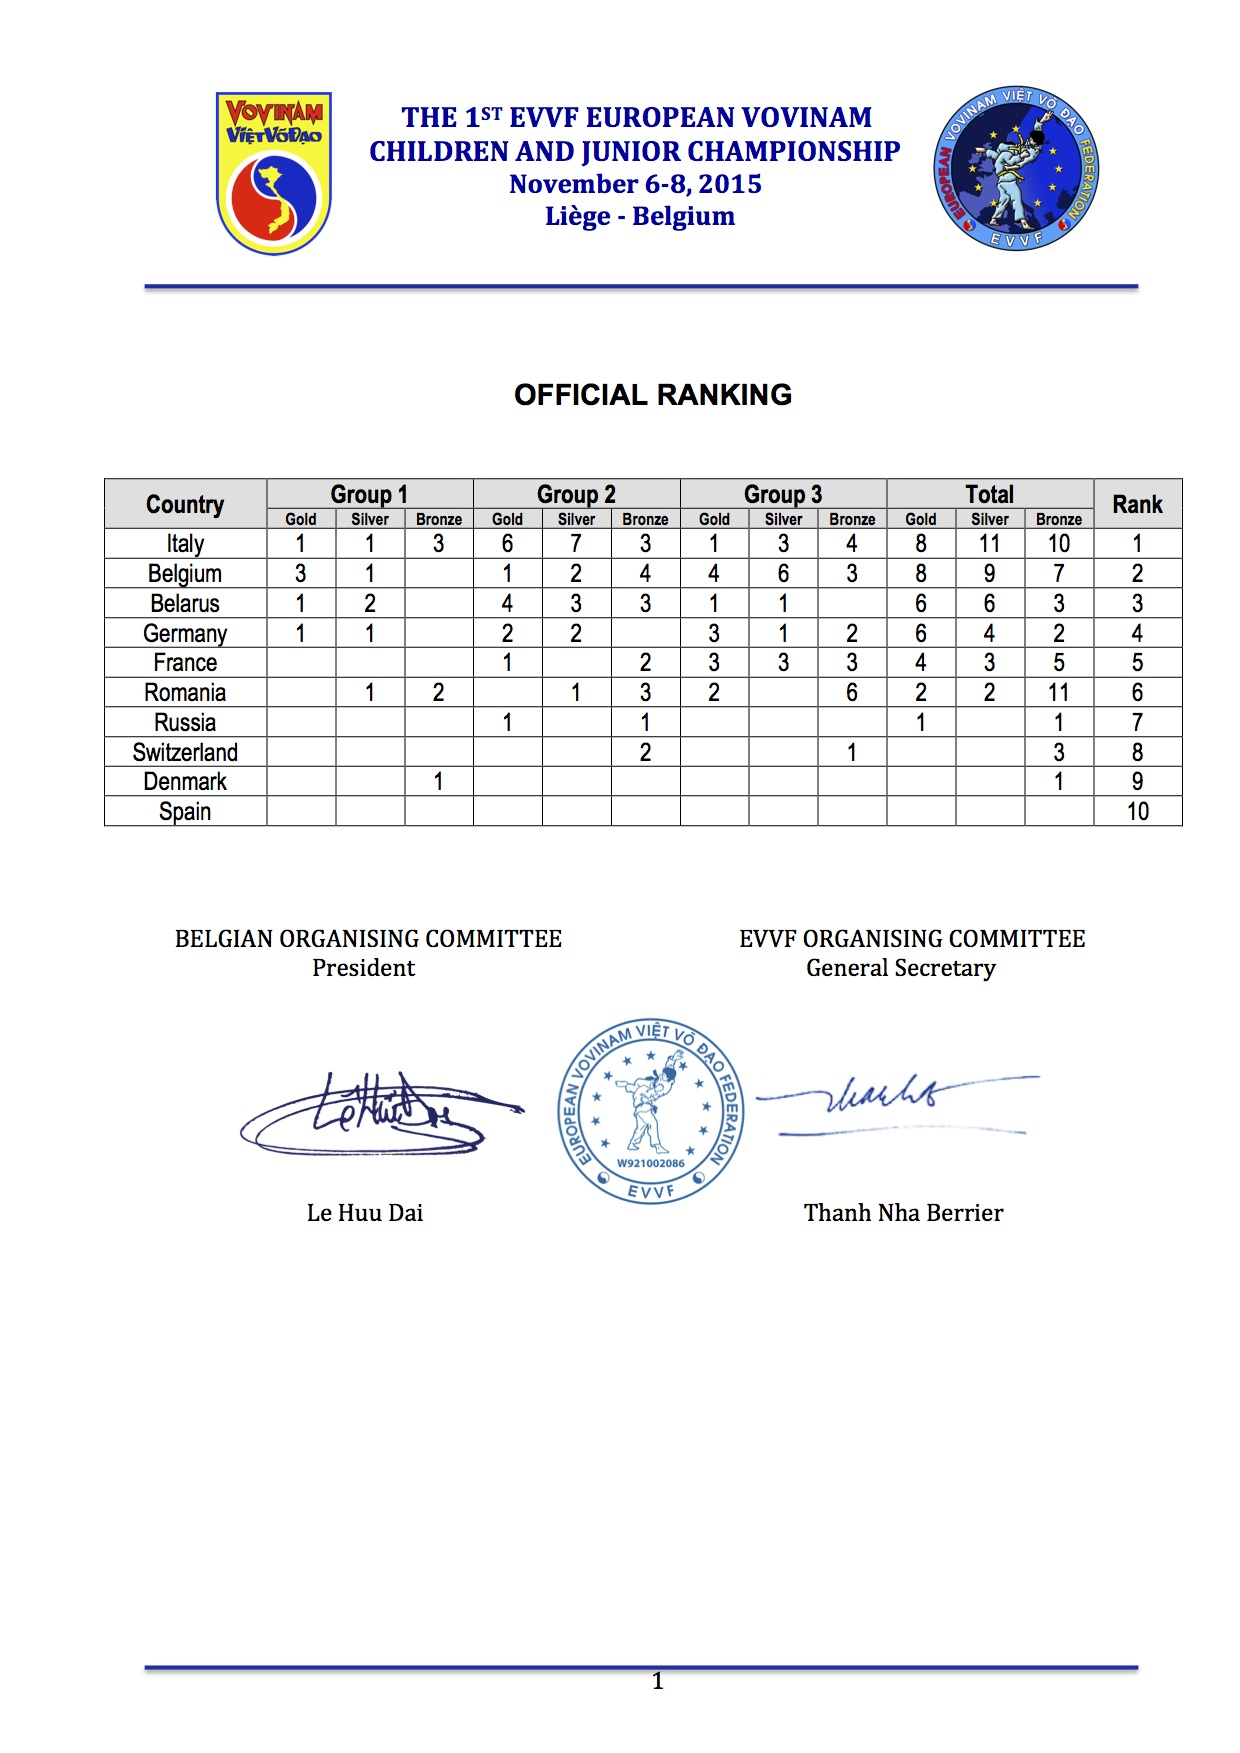 EVVF European Vovinam Children and Junior Championship 2015 - Result